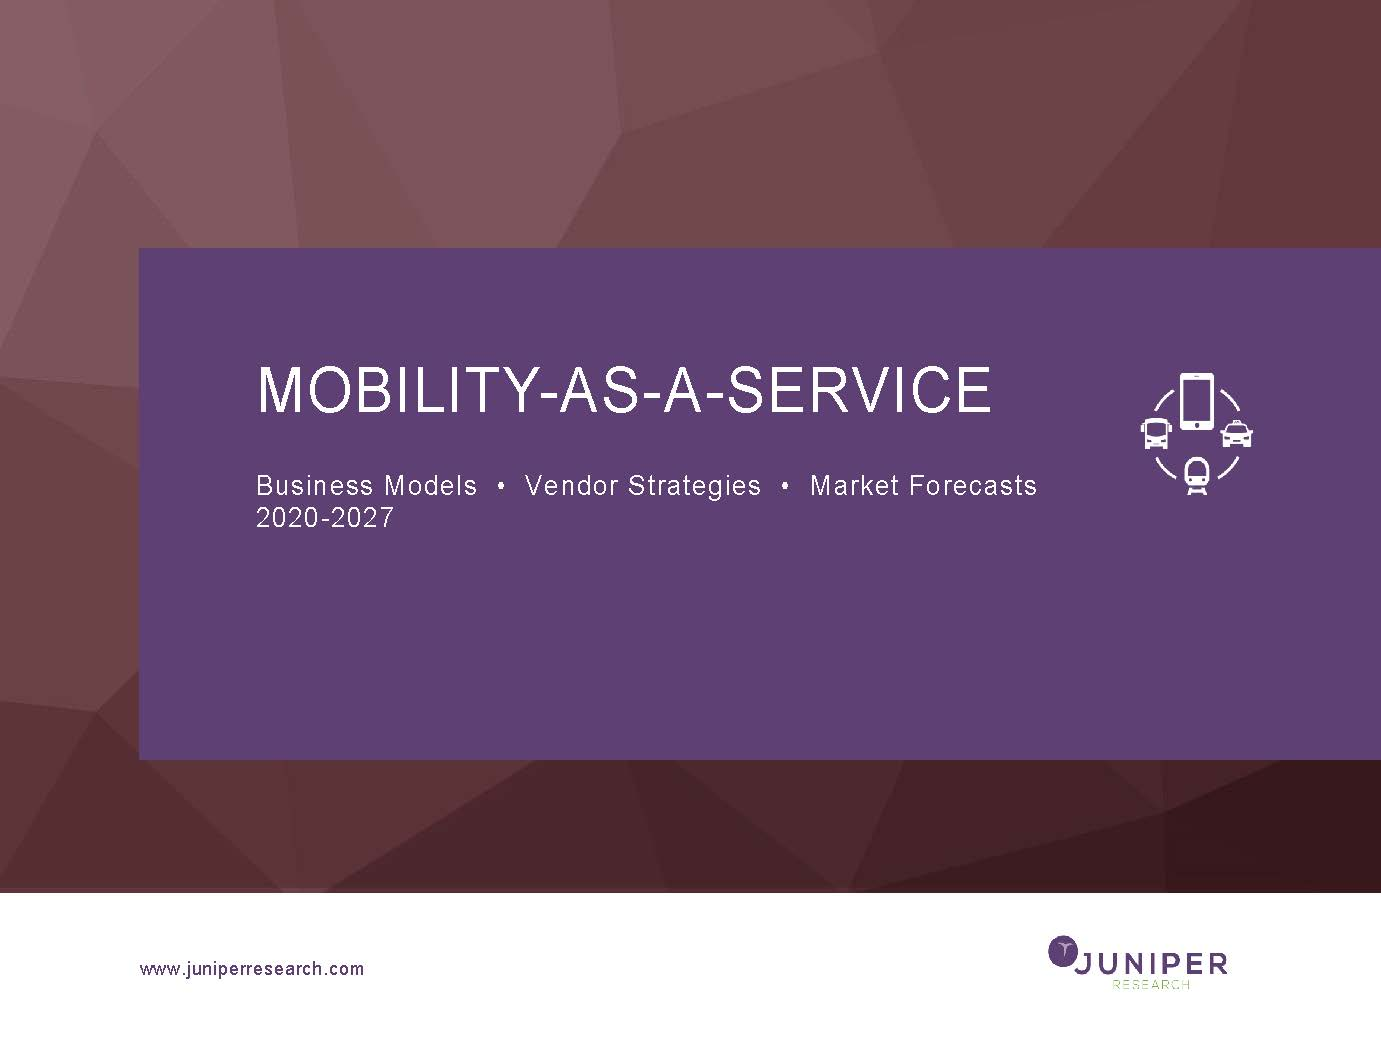 Mobility-as-a-Service: Business Models, Vendor Strategies & Market Forecasts 2020-2027